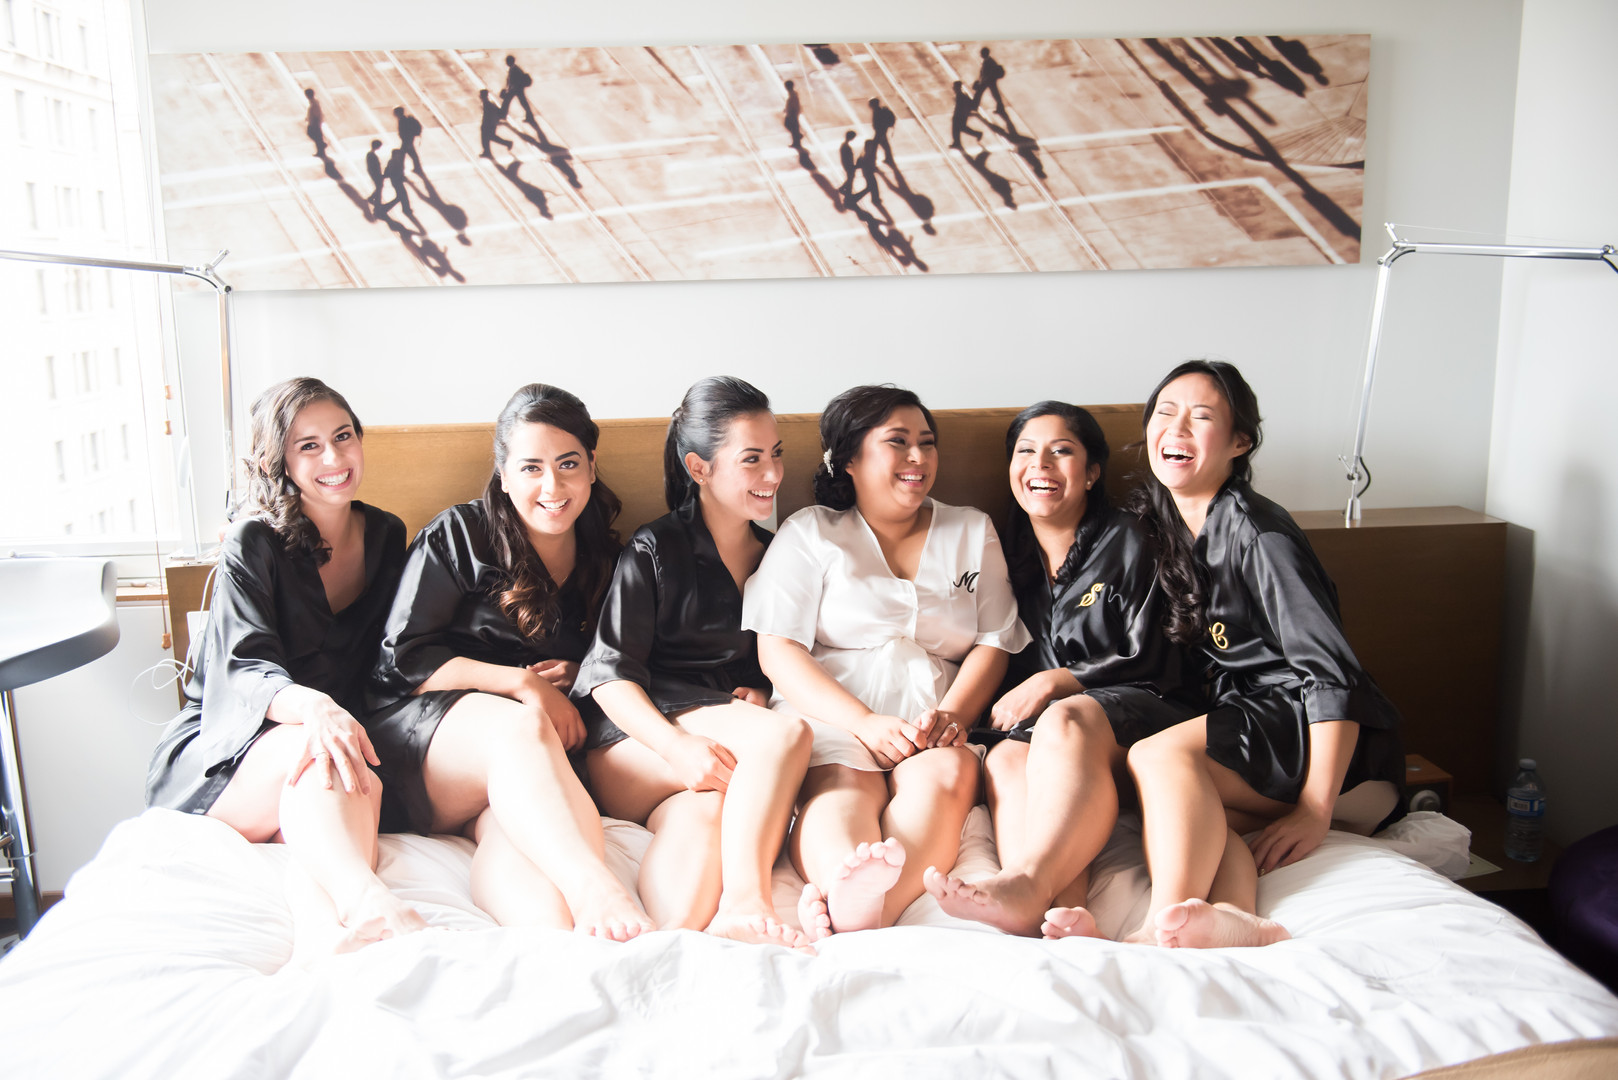 When you have this much fun with your bridesmaids, you are one lucky lady!